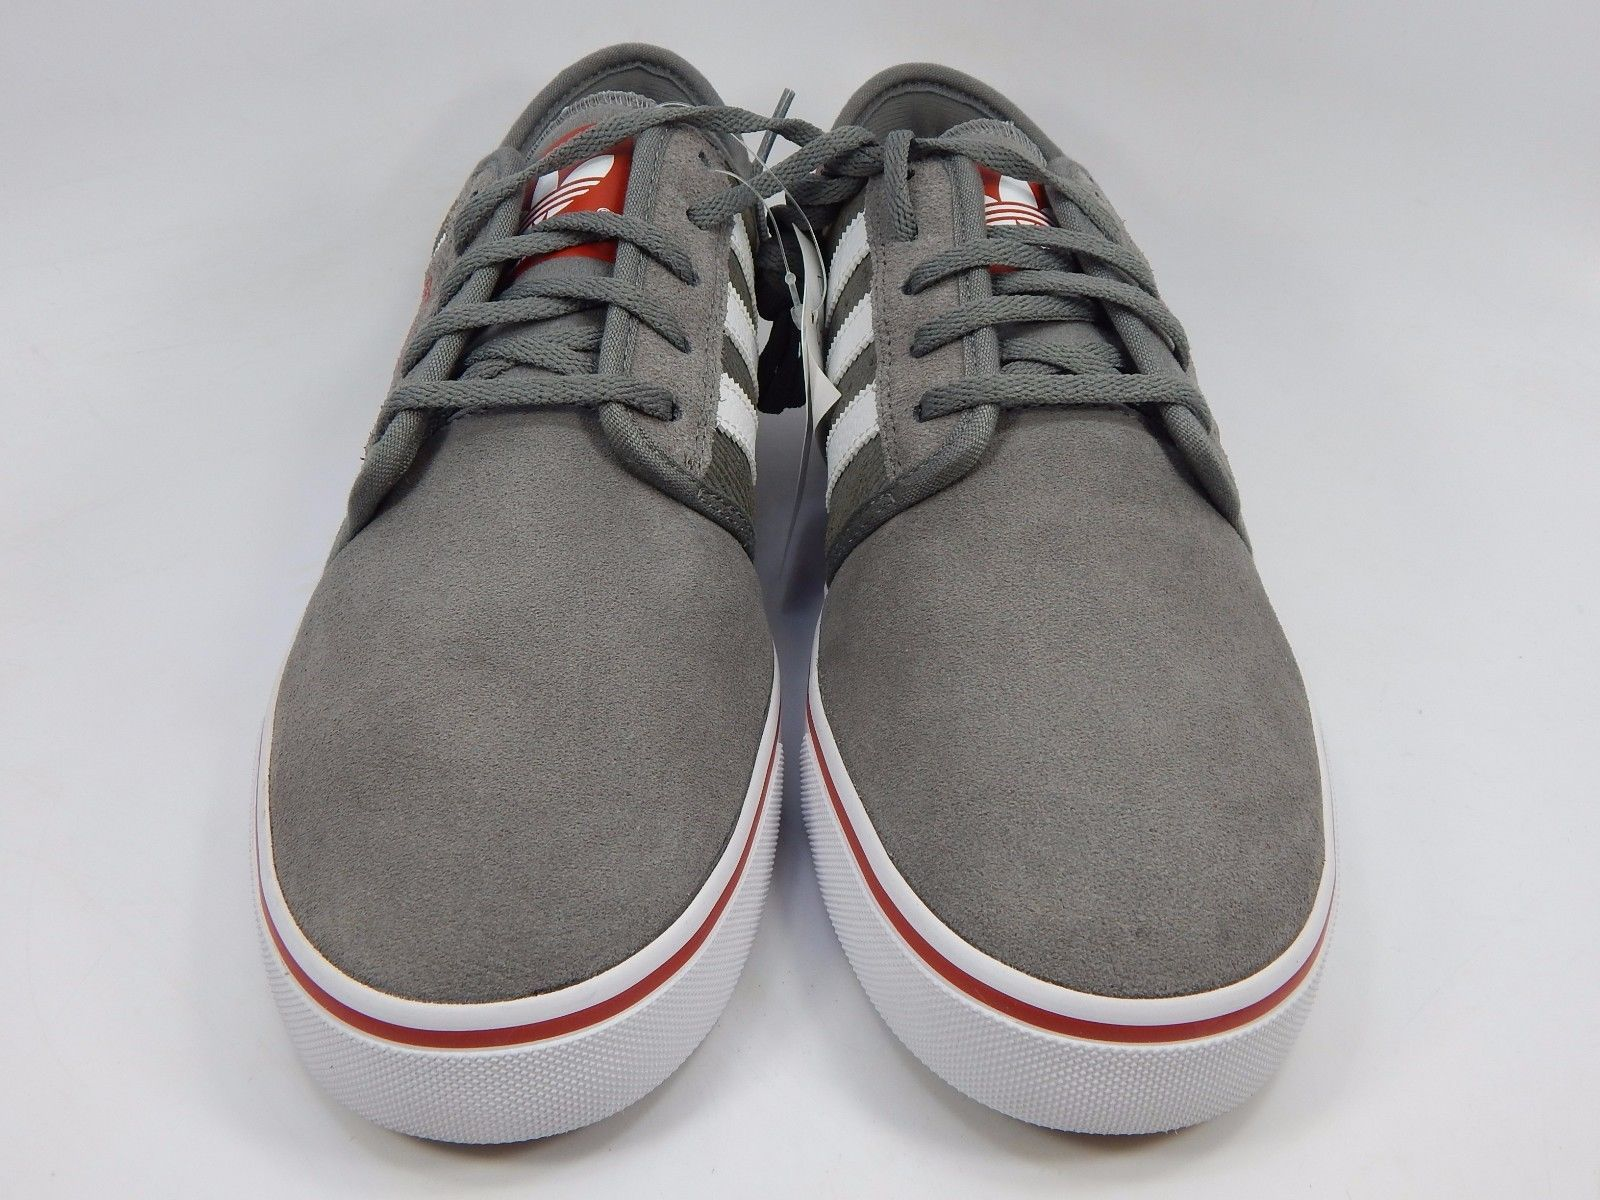 Adidas Seeley Men's Casual Skate Shoes Size 10 M (D) EU 44 Gray Red Q33416